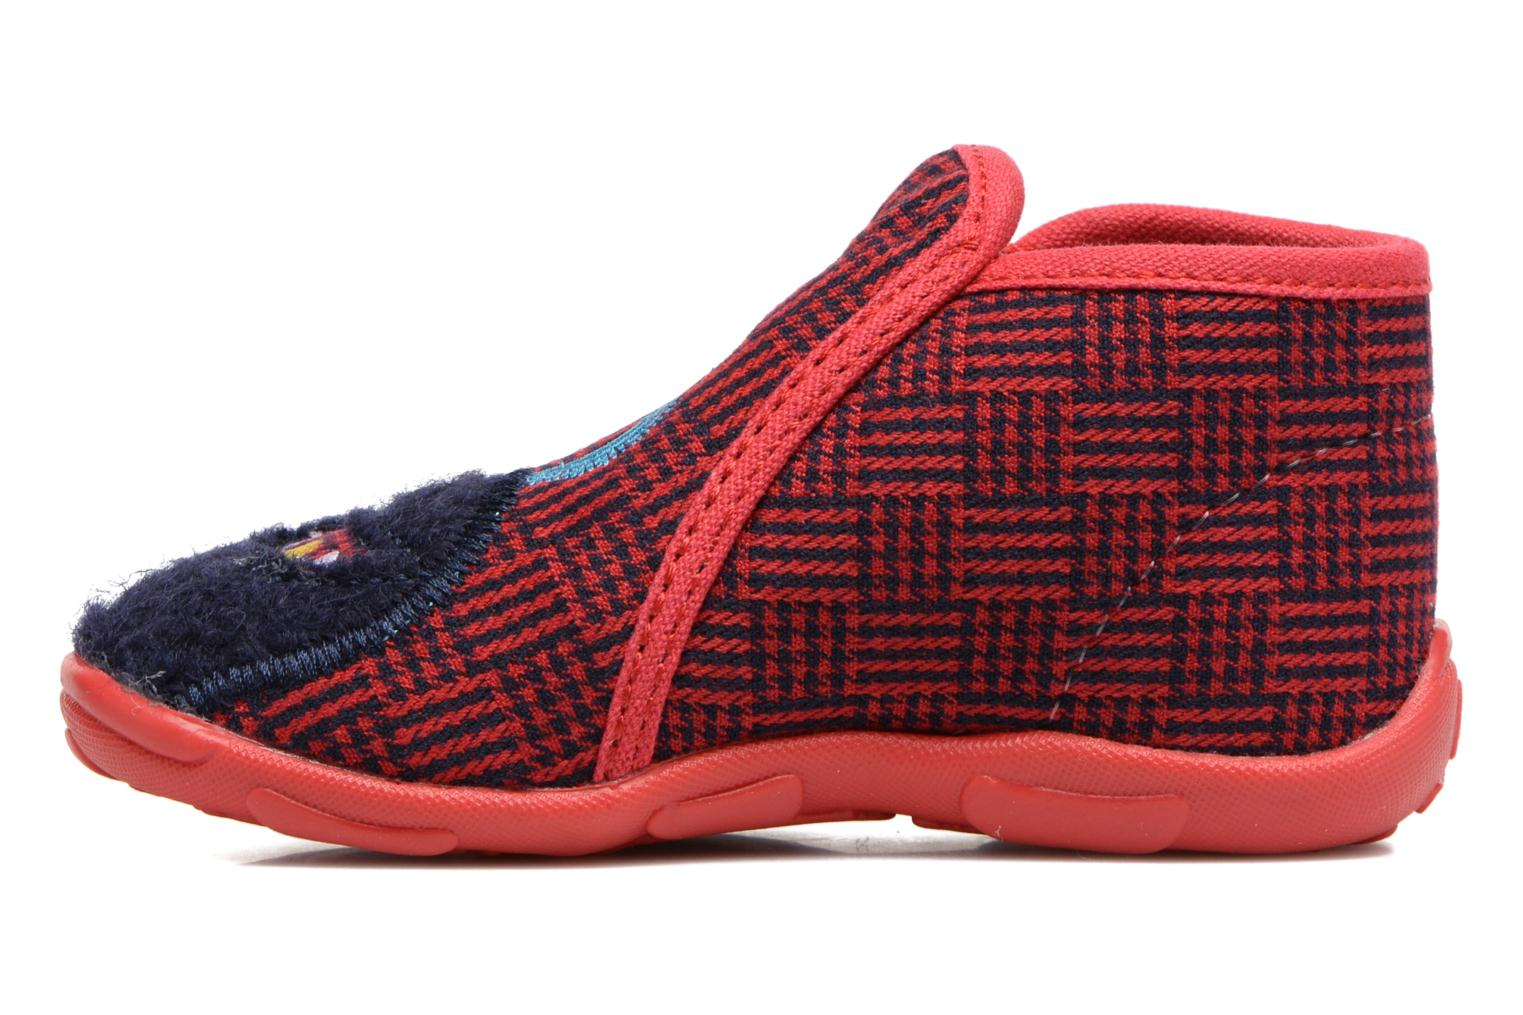 Chaussons GBB Paco Rouge vue face